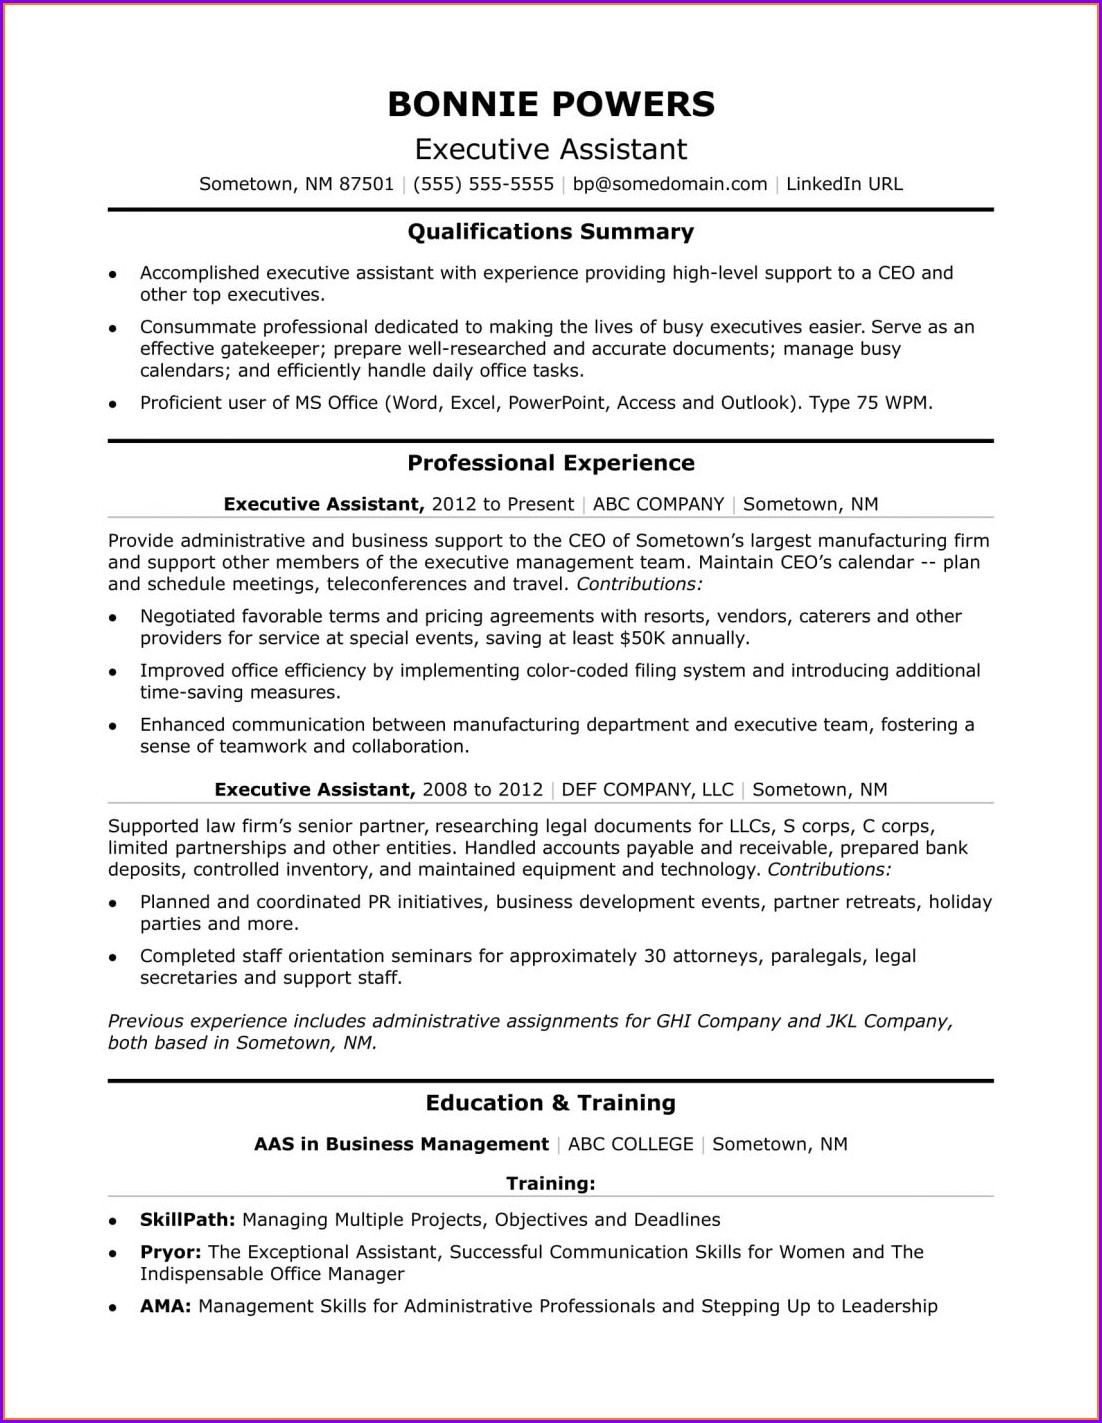 Free Online Resume For Administrative Assistant